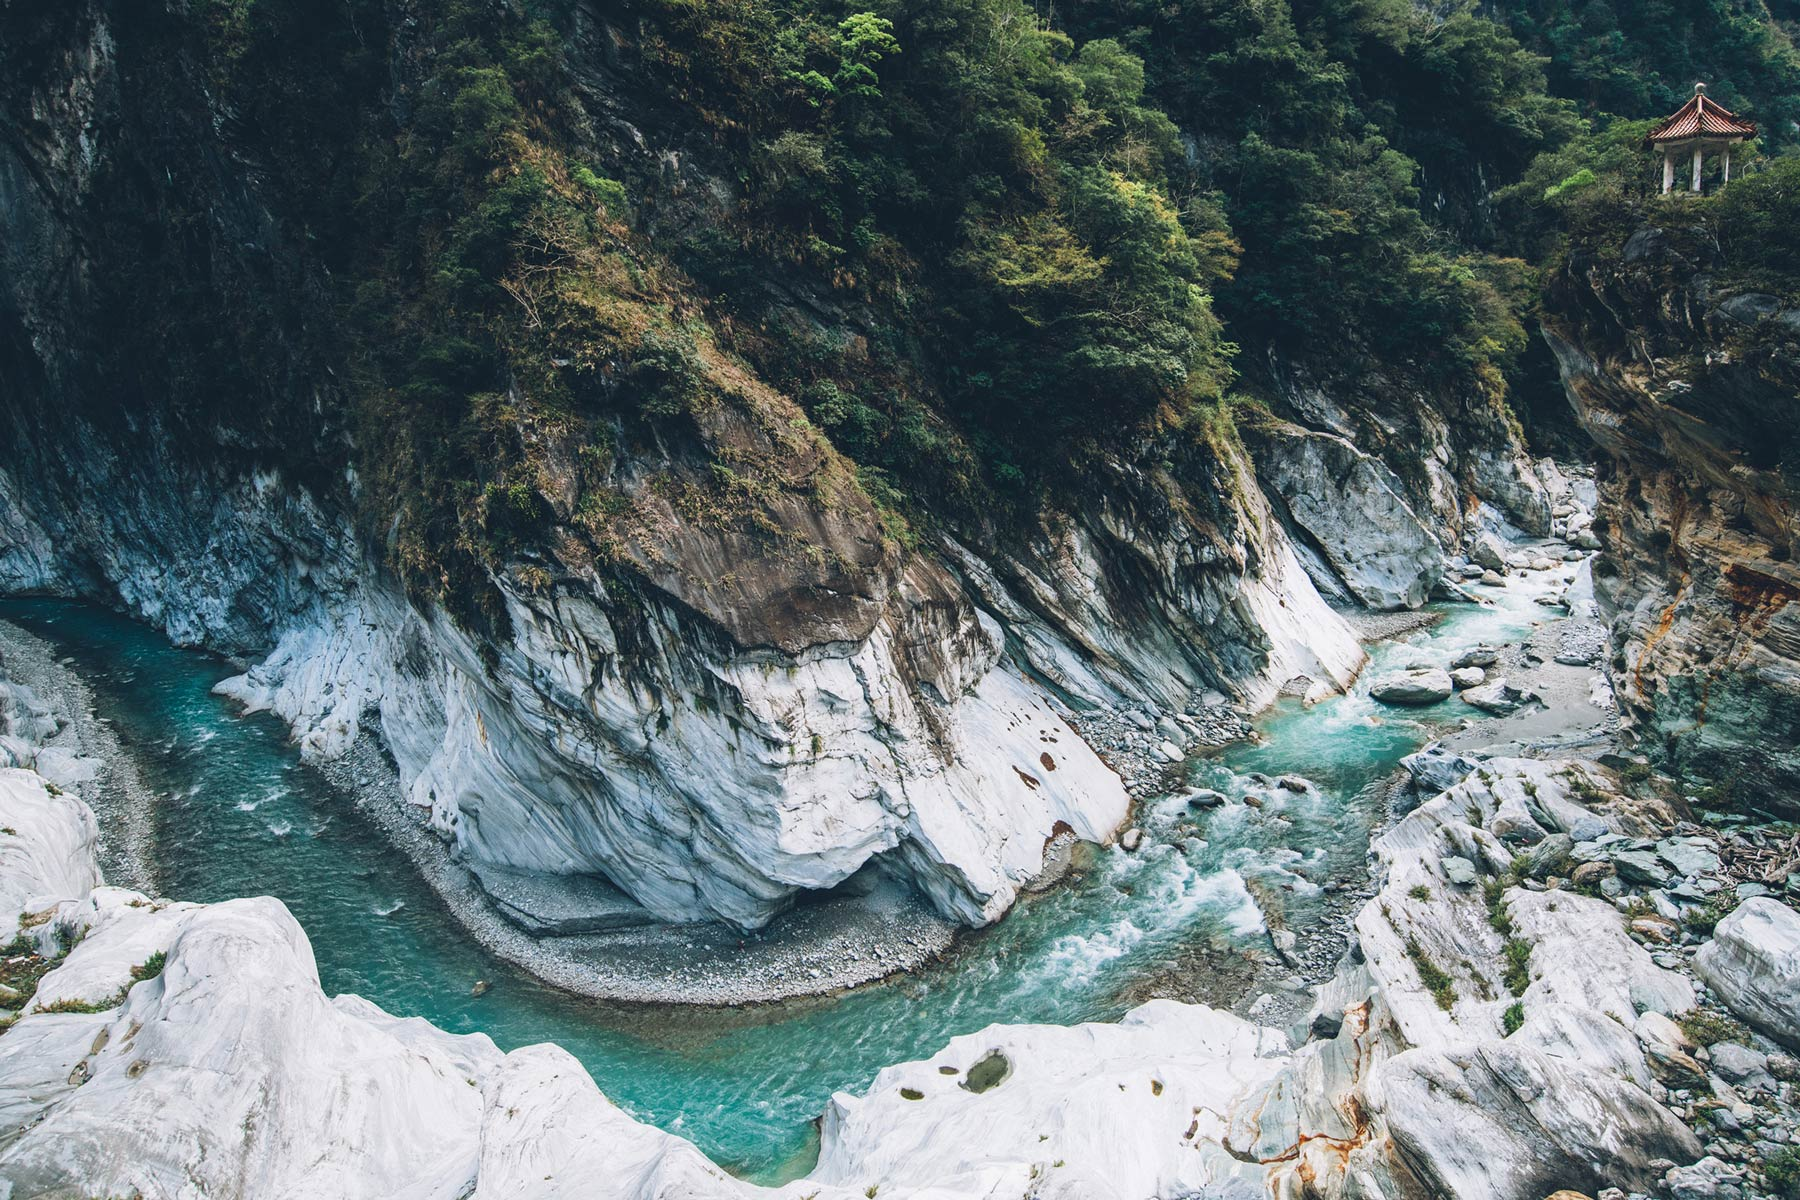 Parc National de Taroko, Taiwan